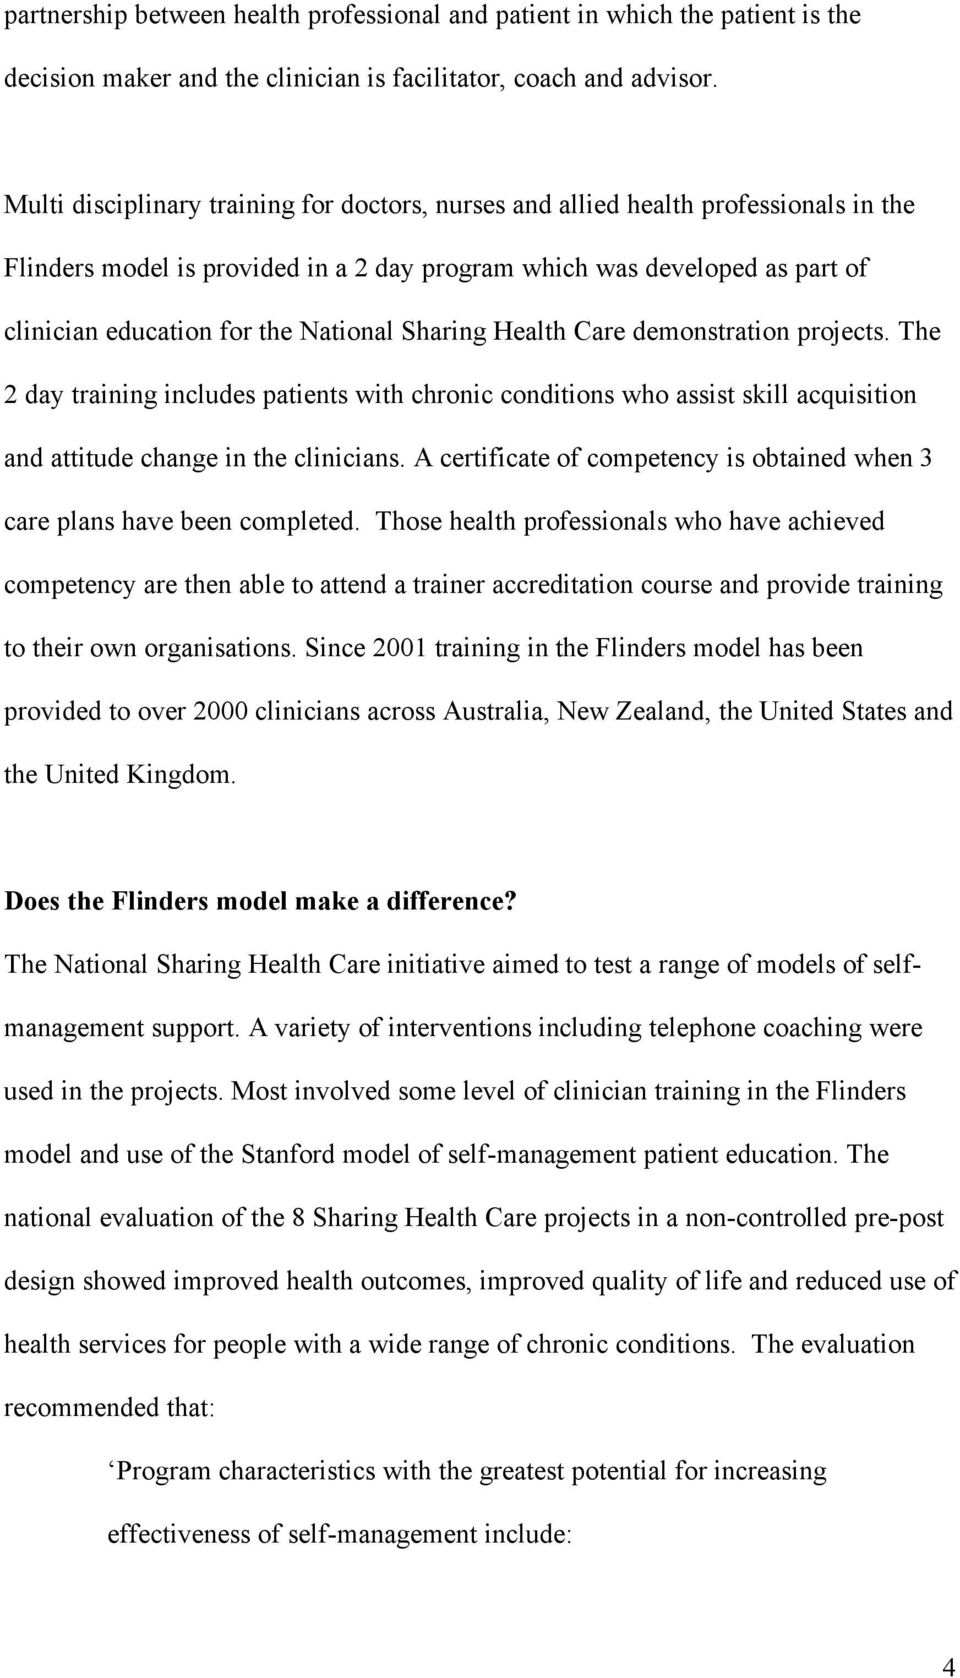 National Sharing Health Care demonstration projects. The 2 day training includes patients with chronic conditions who assist skill acquisition and attitude change in the clinicians.